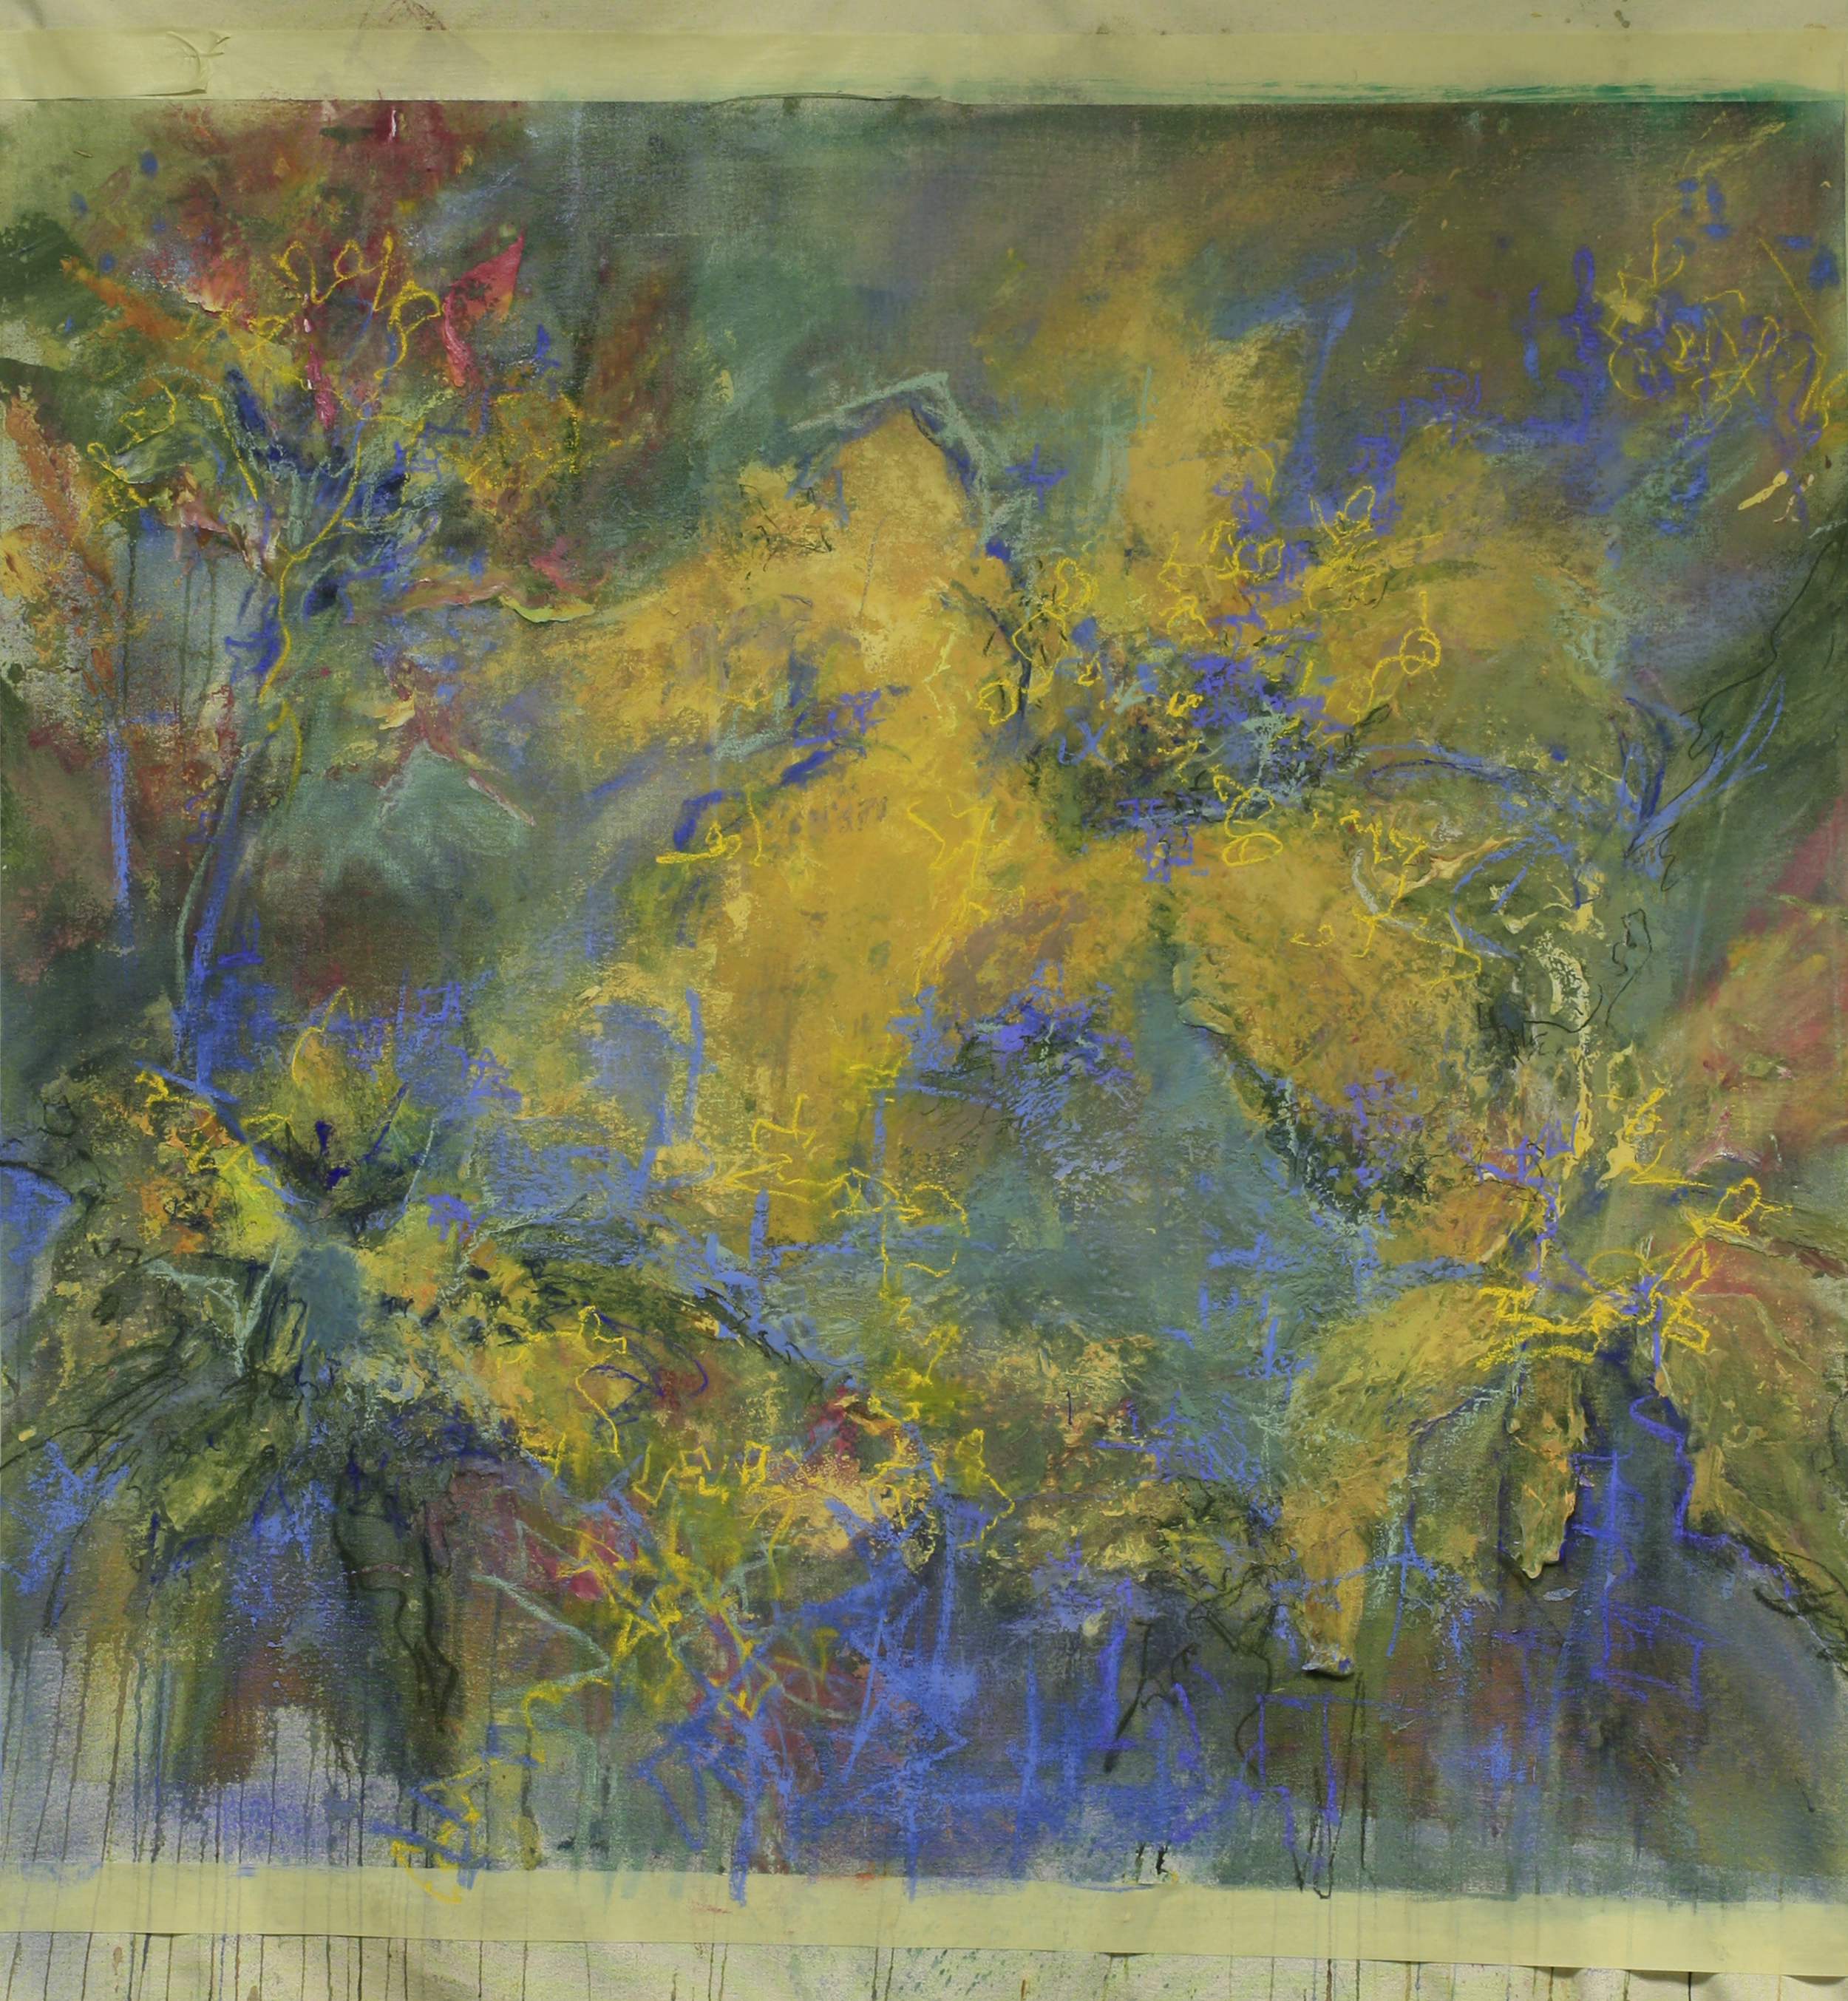 I started to see floral imagery....is that a surprise for me, a consummate lover and painter of flowers? Have I made this painting conform to the familiar imagery in my head or isthiswhere intuition takes me?